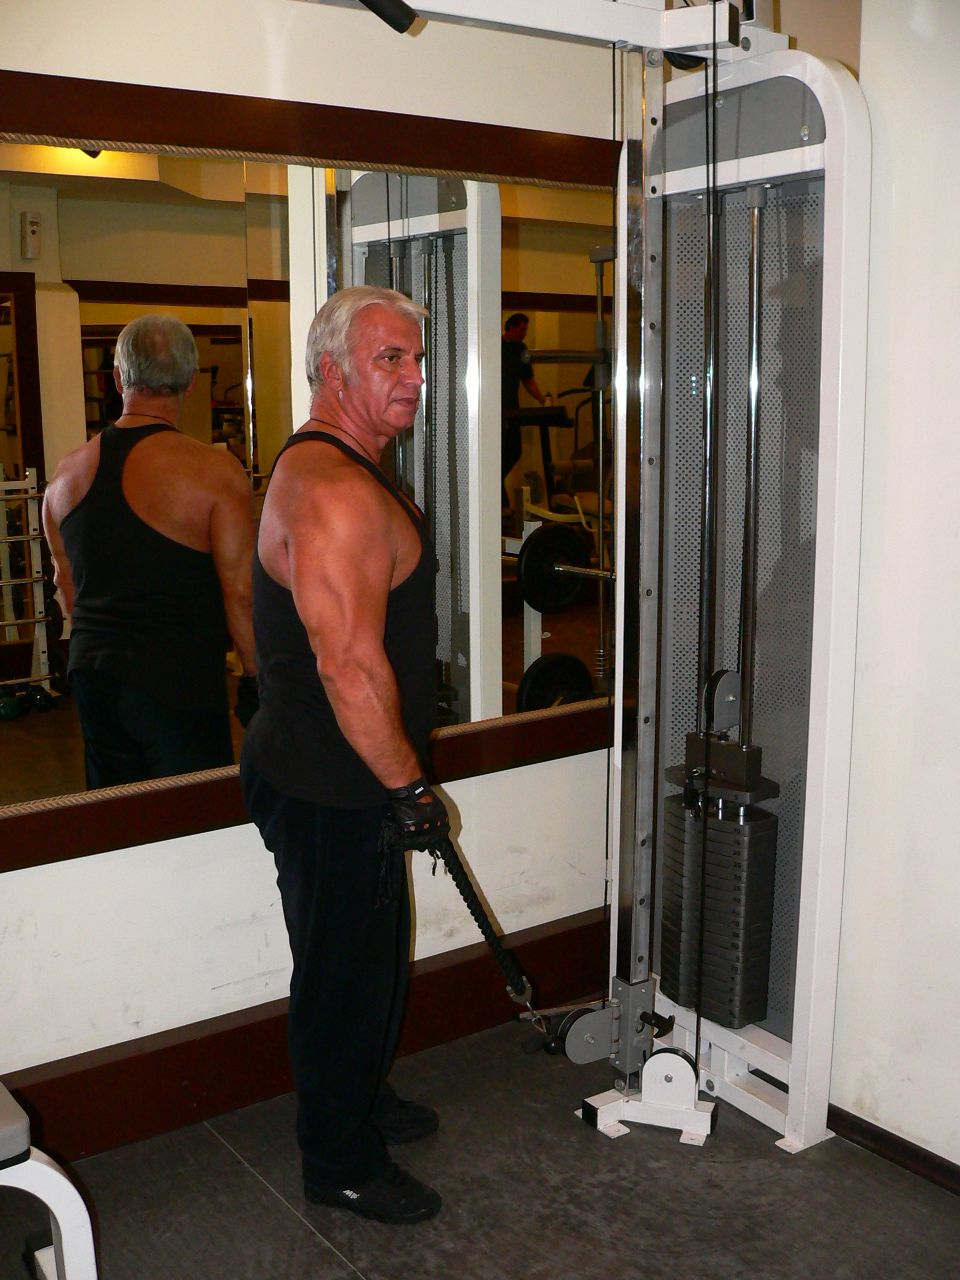 Cable Hammer Curl – Rope Attachment